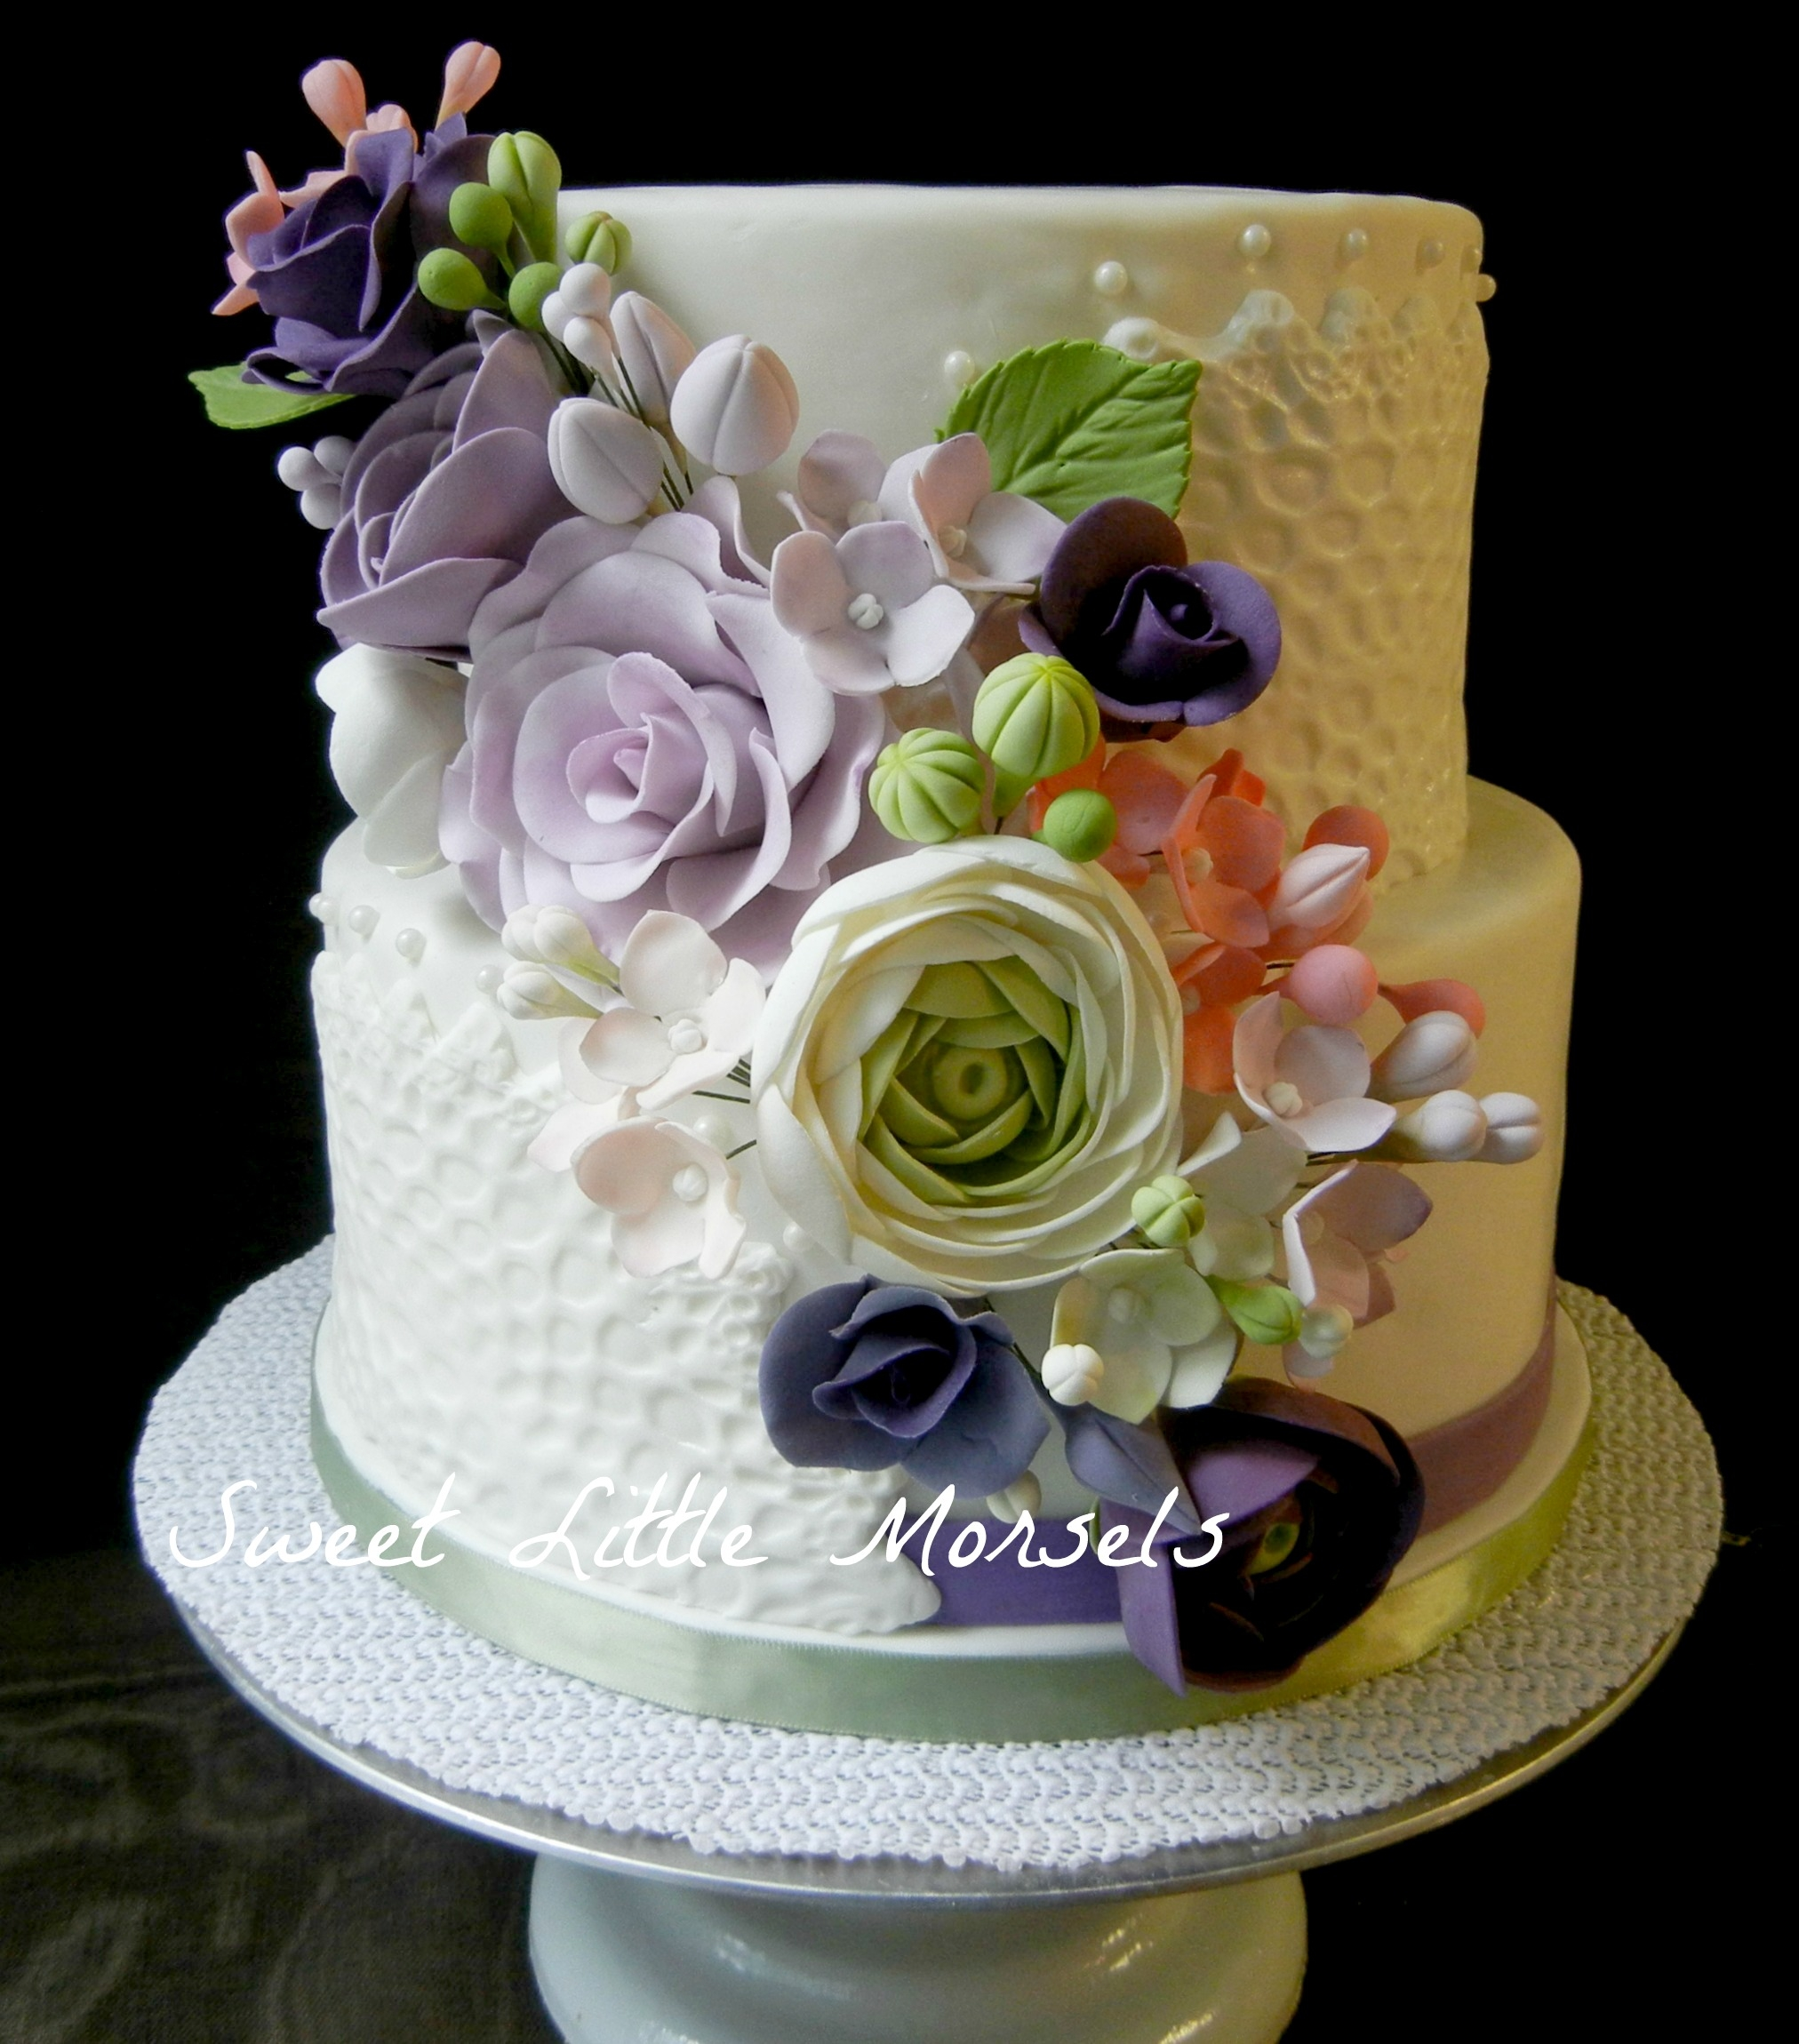 This was a cake I did a little over a month ago for a bridal shower. The colors were, purple, pink and green. All the sugar flowers were handmade by me, which took me about 4 days to complete. I had a lot left over which was nice. Love how it turned out.